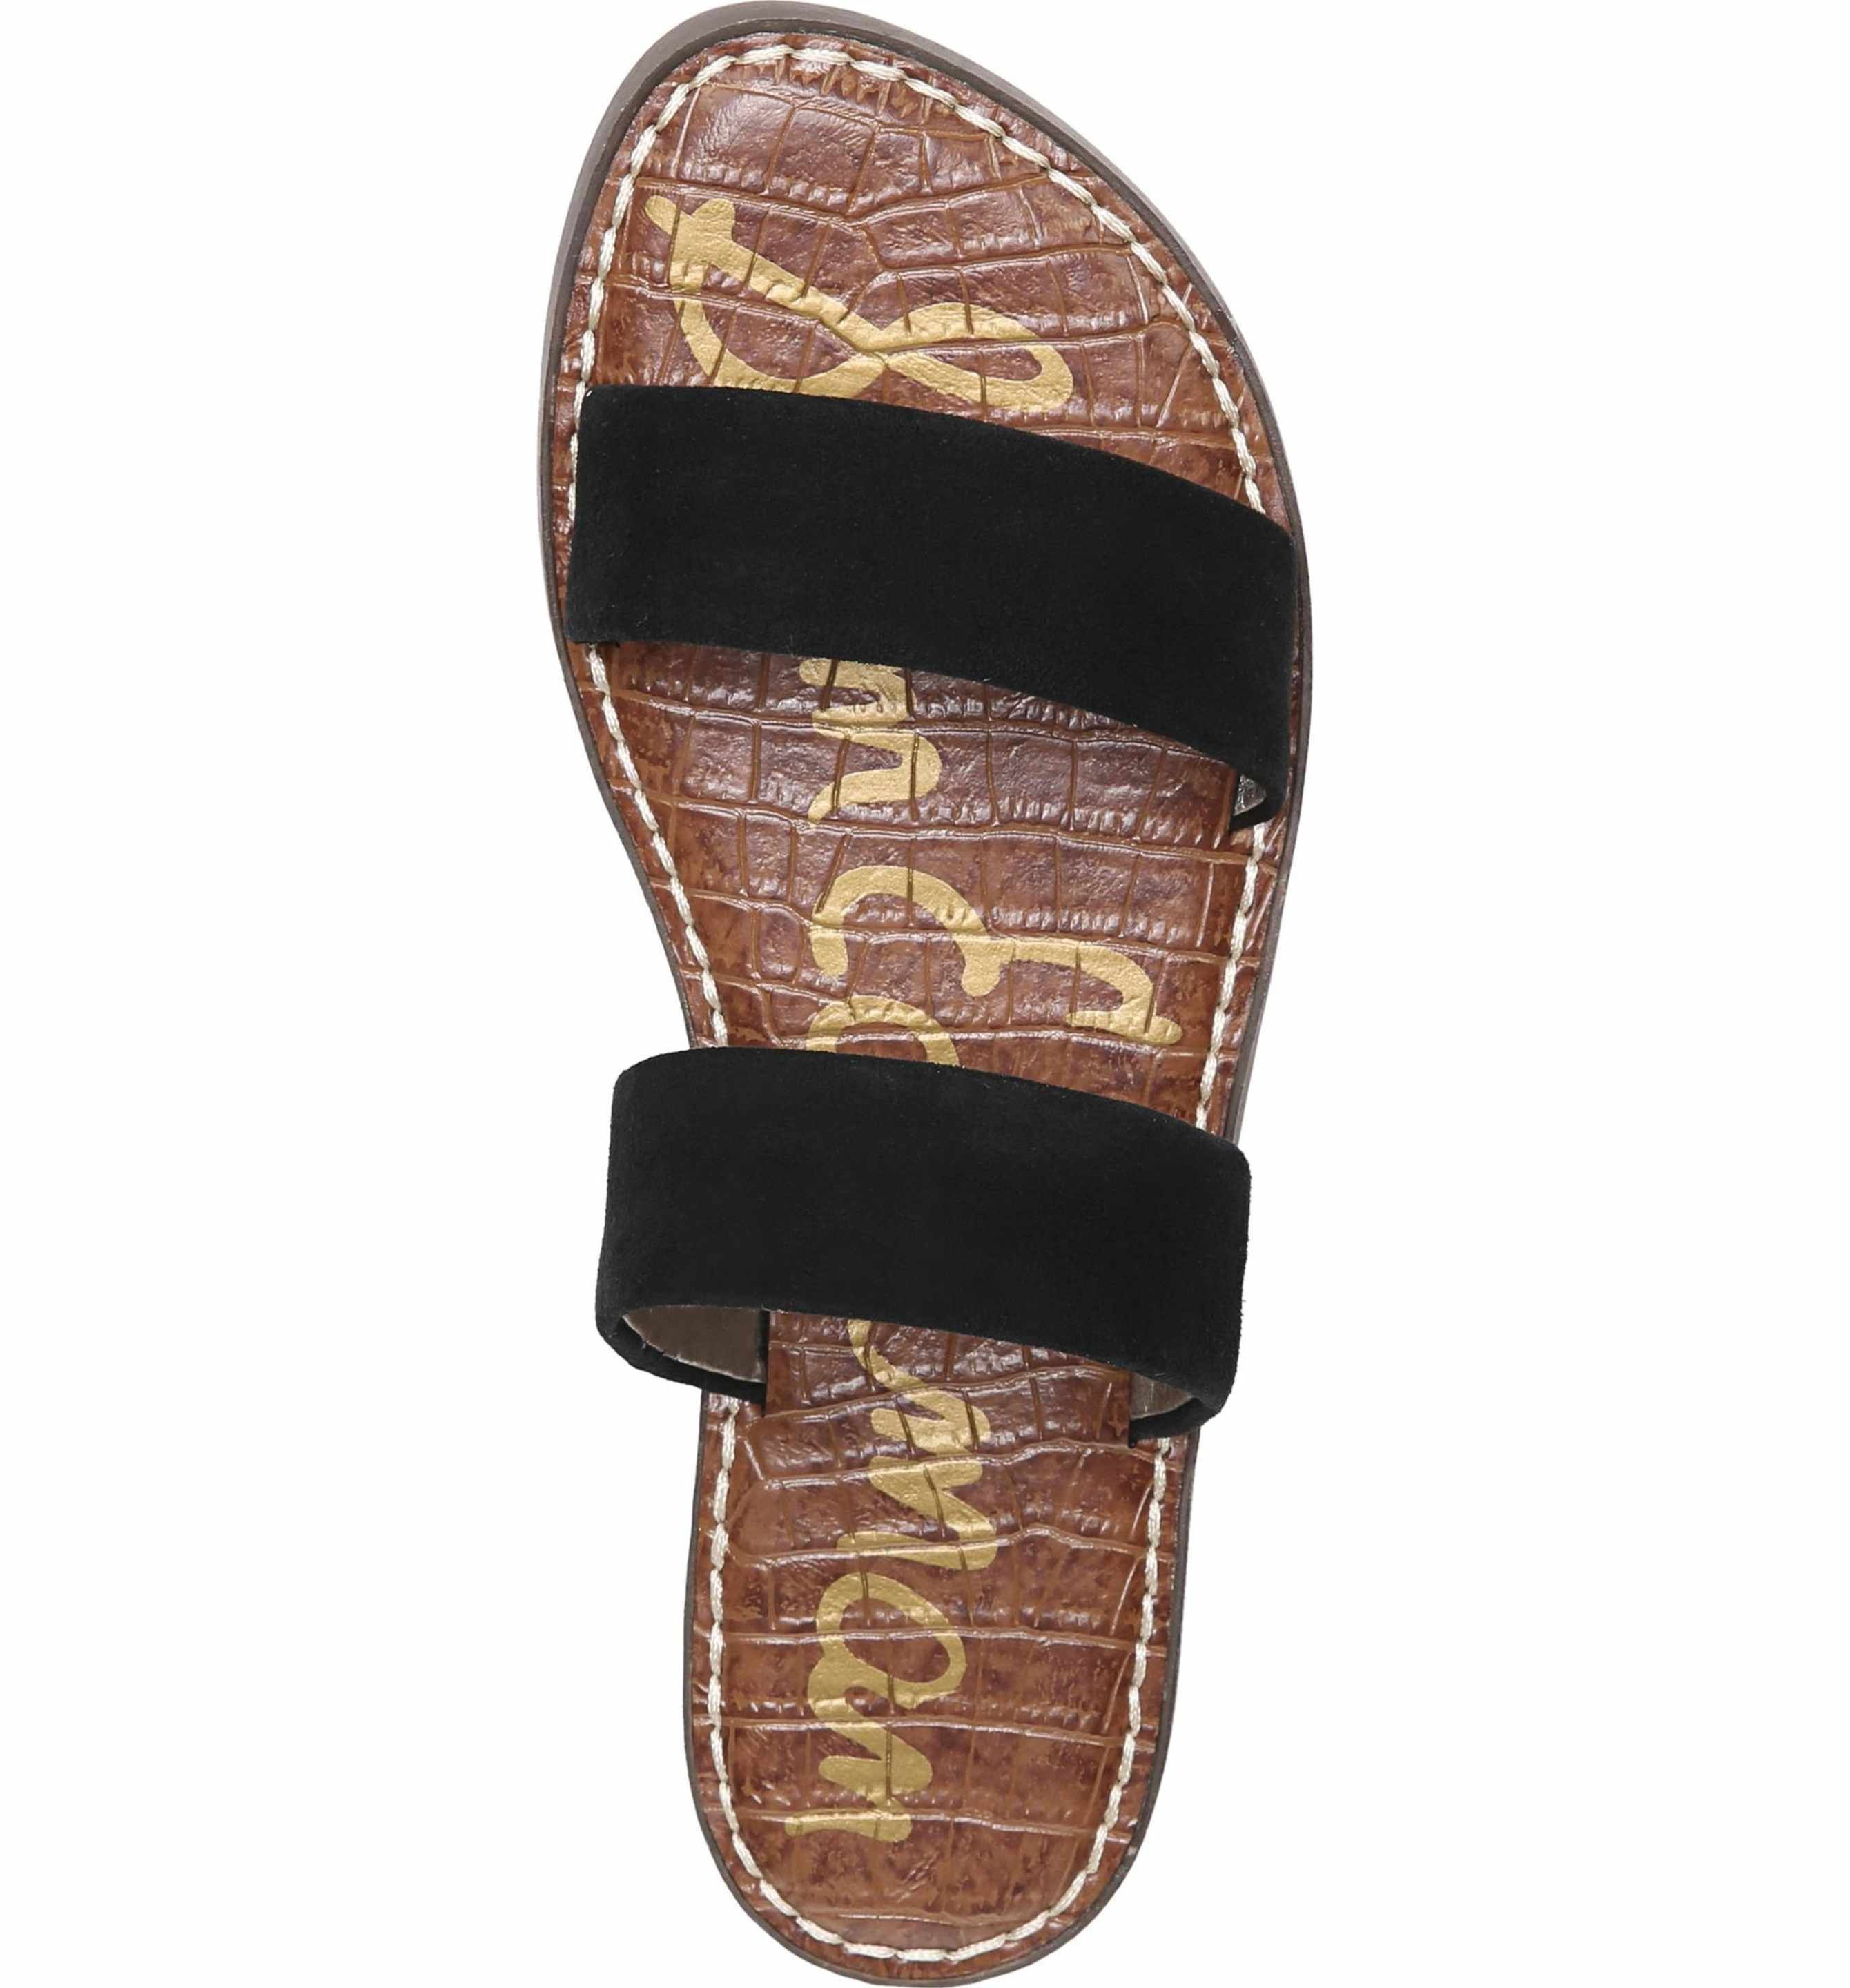 bccabe922e0 Main Image - Sam Edelman Gala Two Strap Slide Sandal (Women)